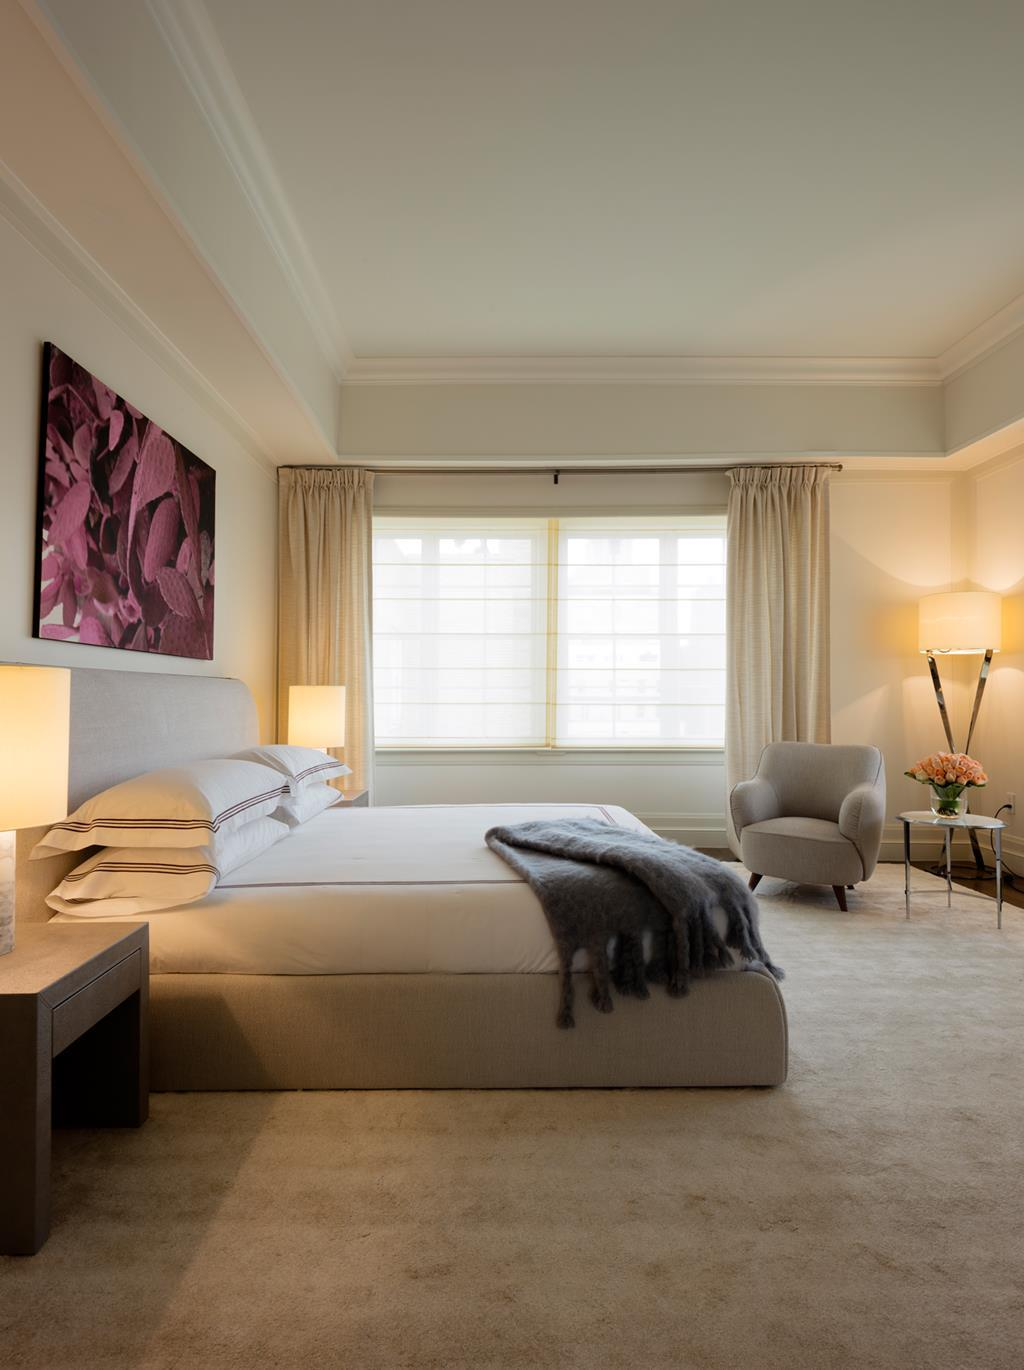 The Penthouse Suite's Master Bedroom